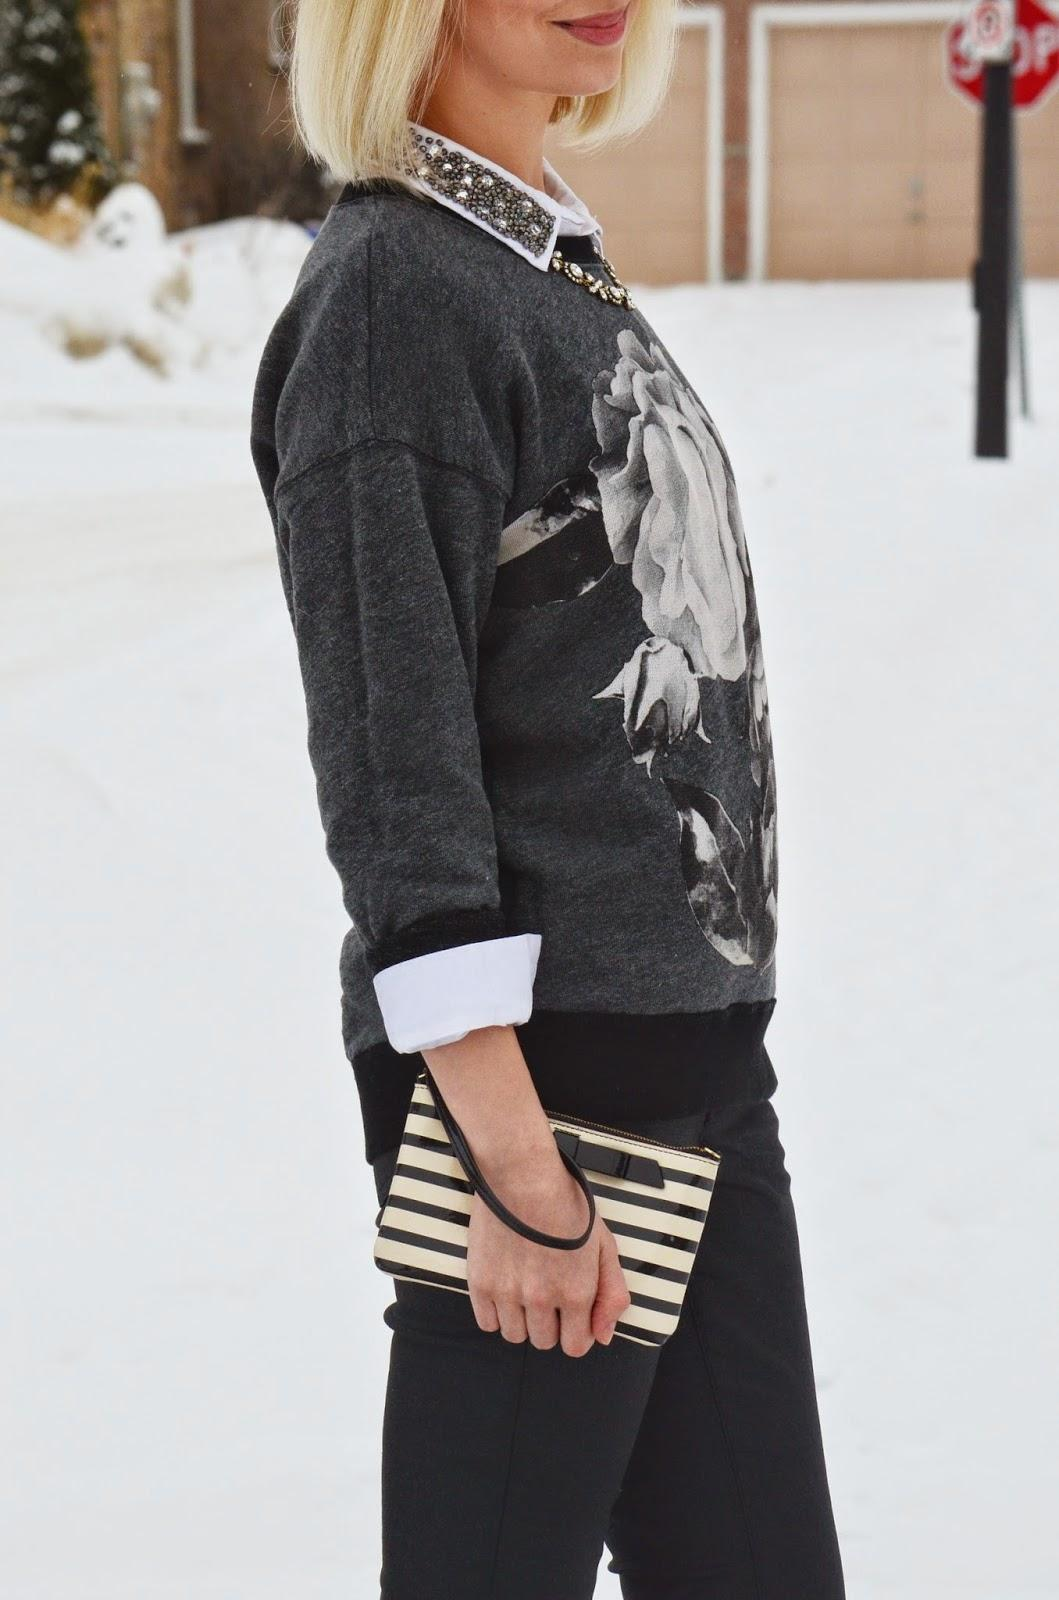 Style, OOTD, J. Crew style, j. Crew, black and grey, Floral sweatshirt, business casual, preppy style, preppy, Old Navy, Asos, Kate Spade, Benevolent Jewels, sweatshirt style